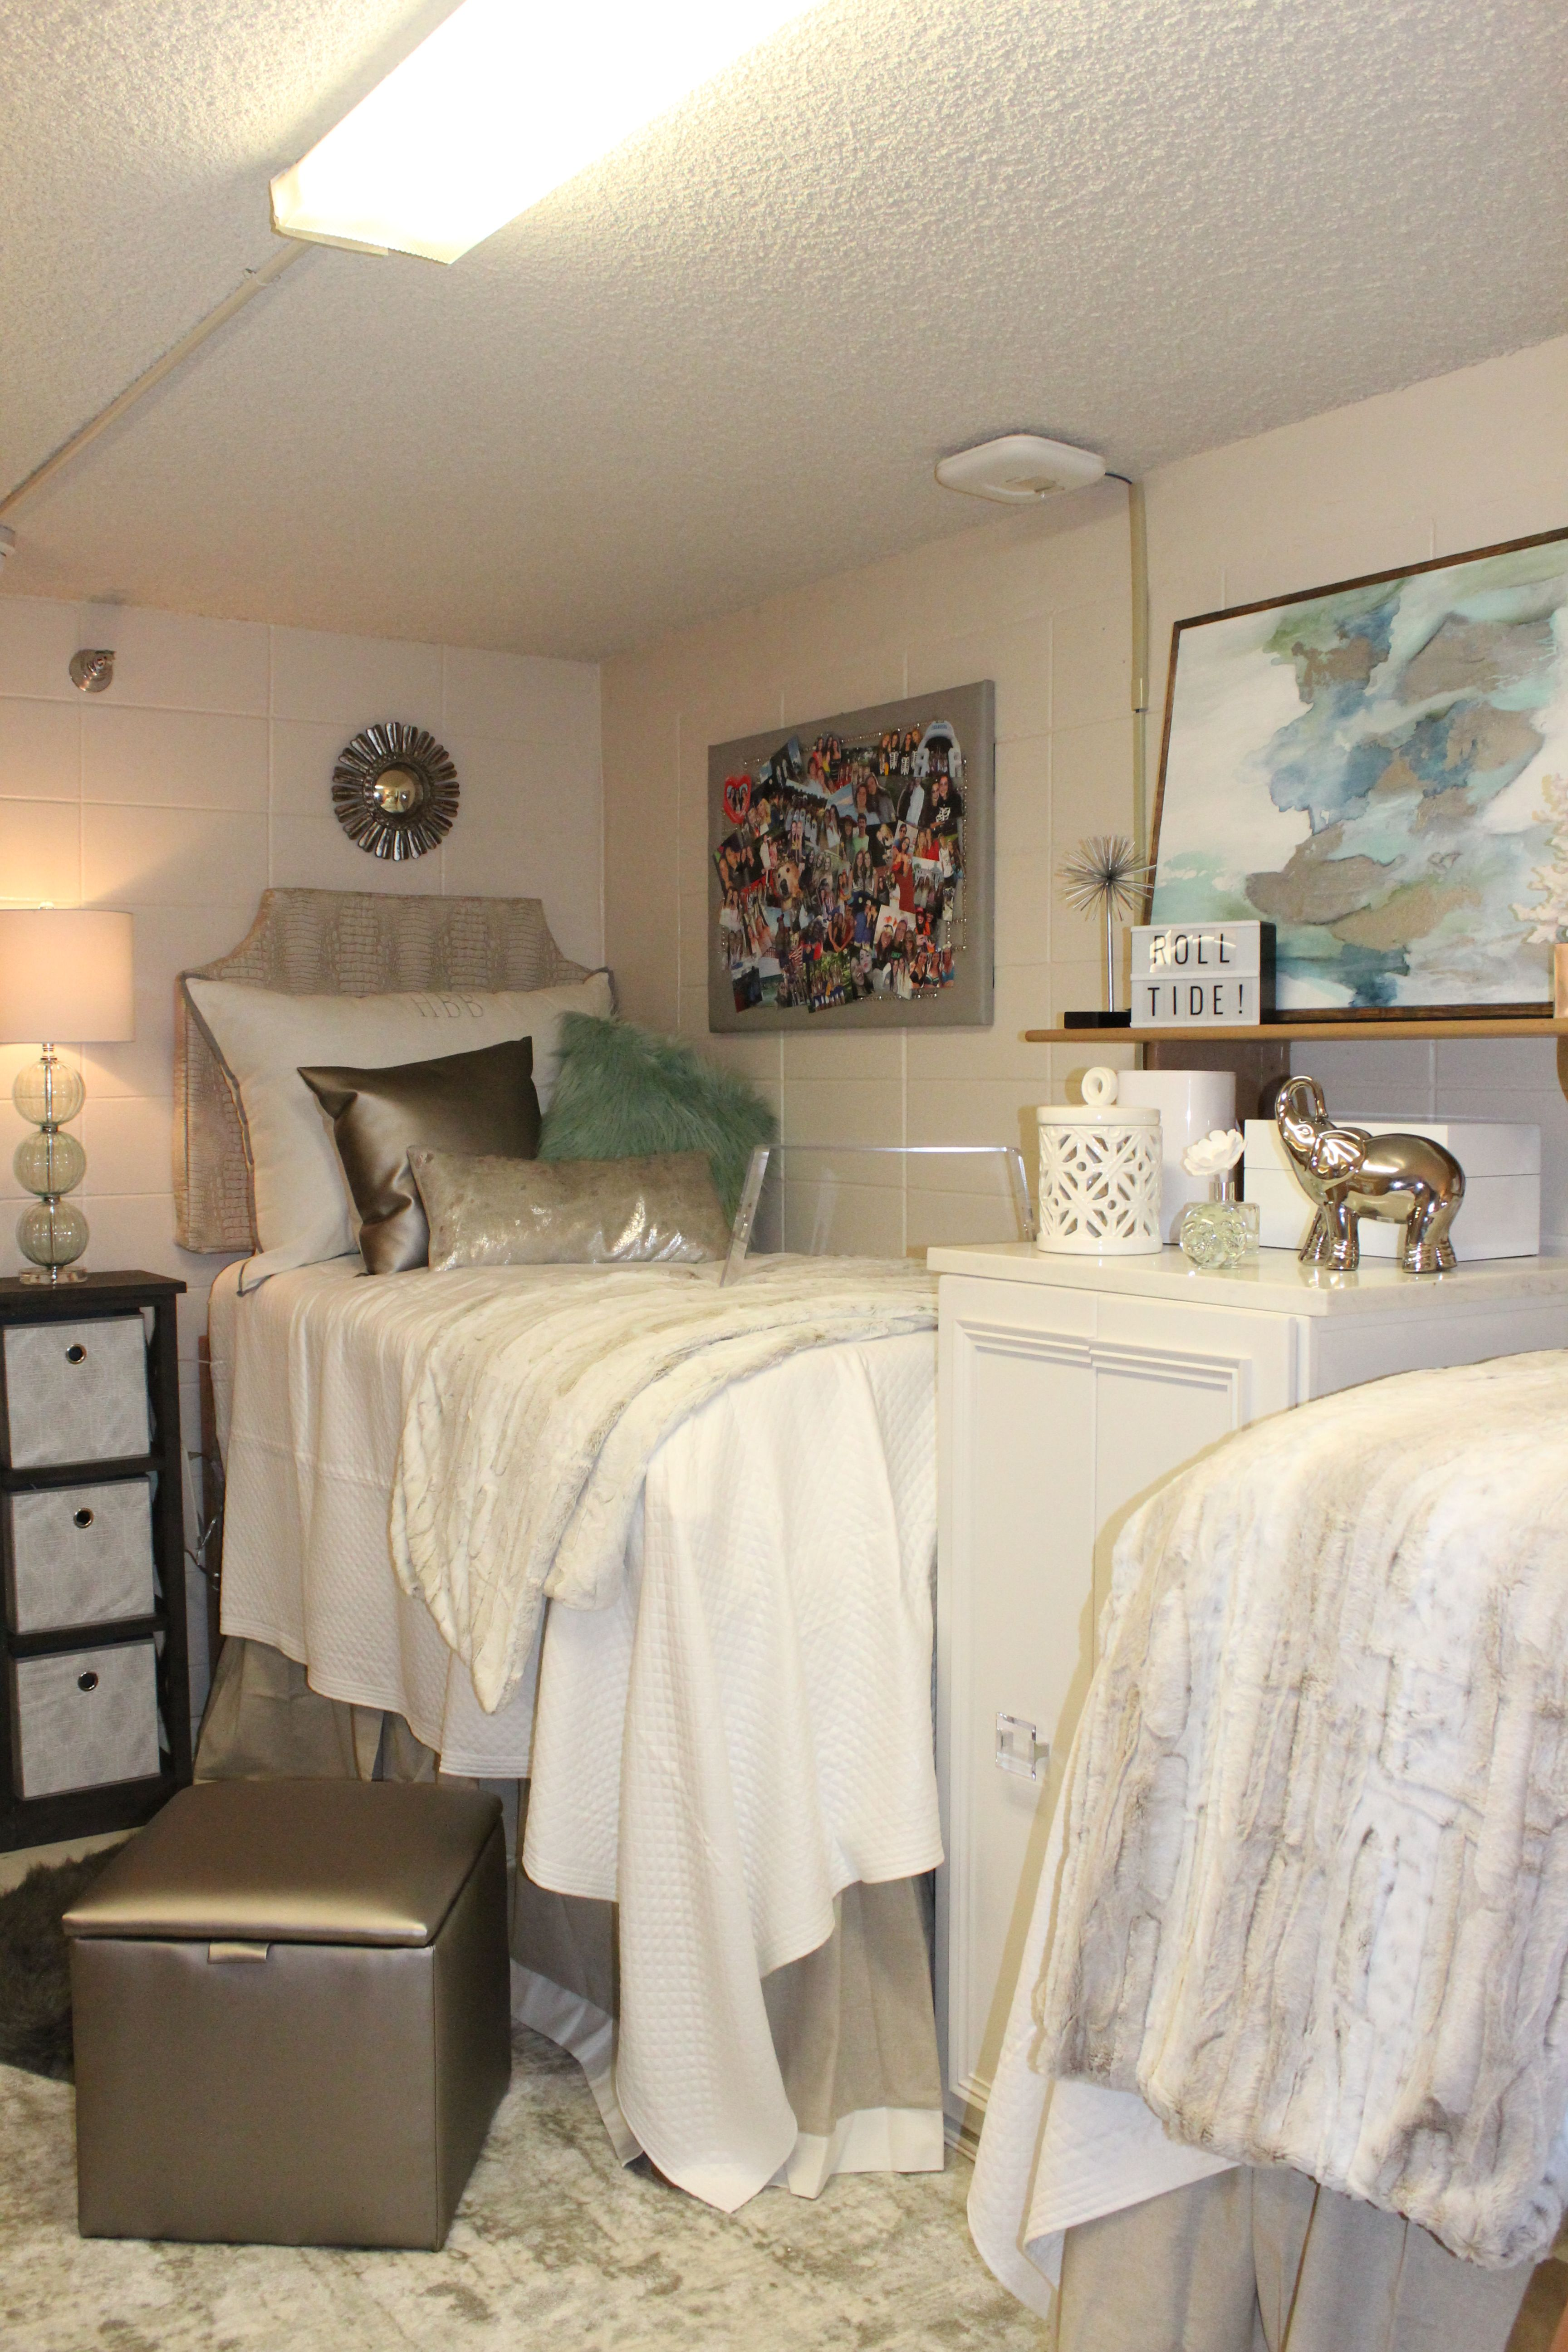 Alabama Tutwiler Dorm Ansley Room Ideas In 2019 Preppy